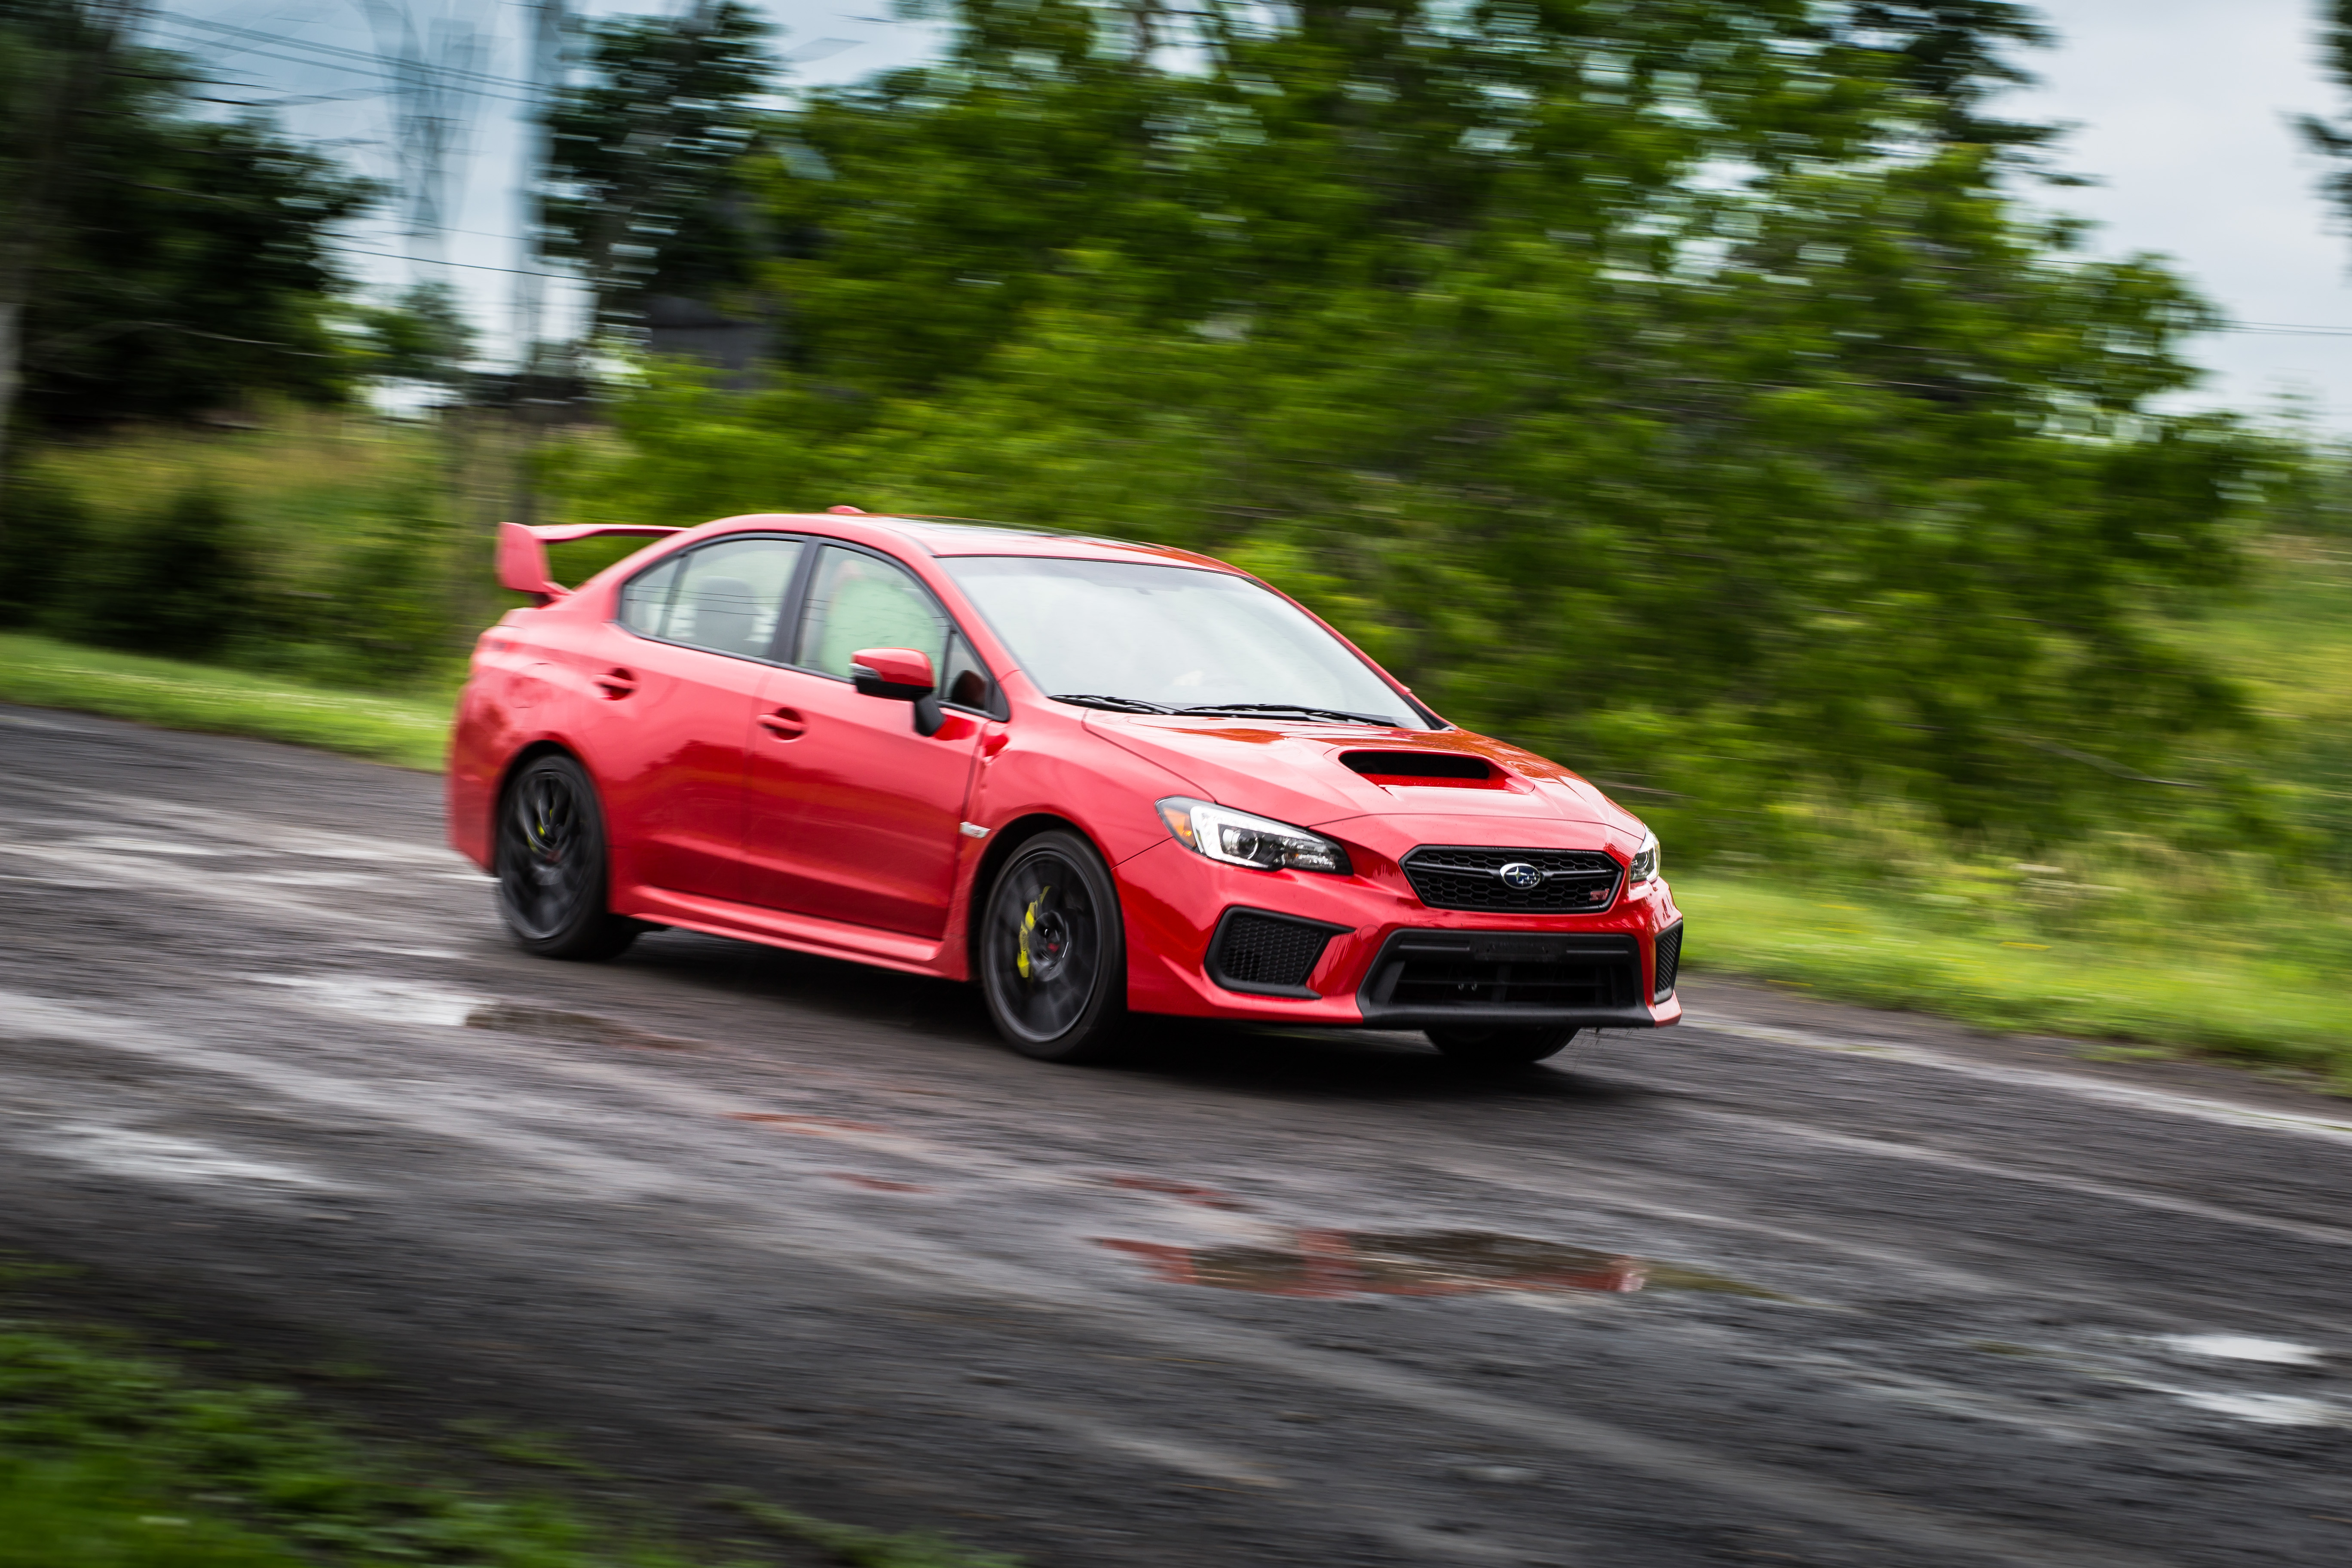 2018 Subaru WRX STI: I'll Be Your Driver